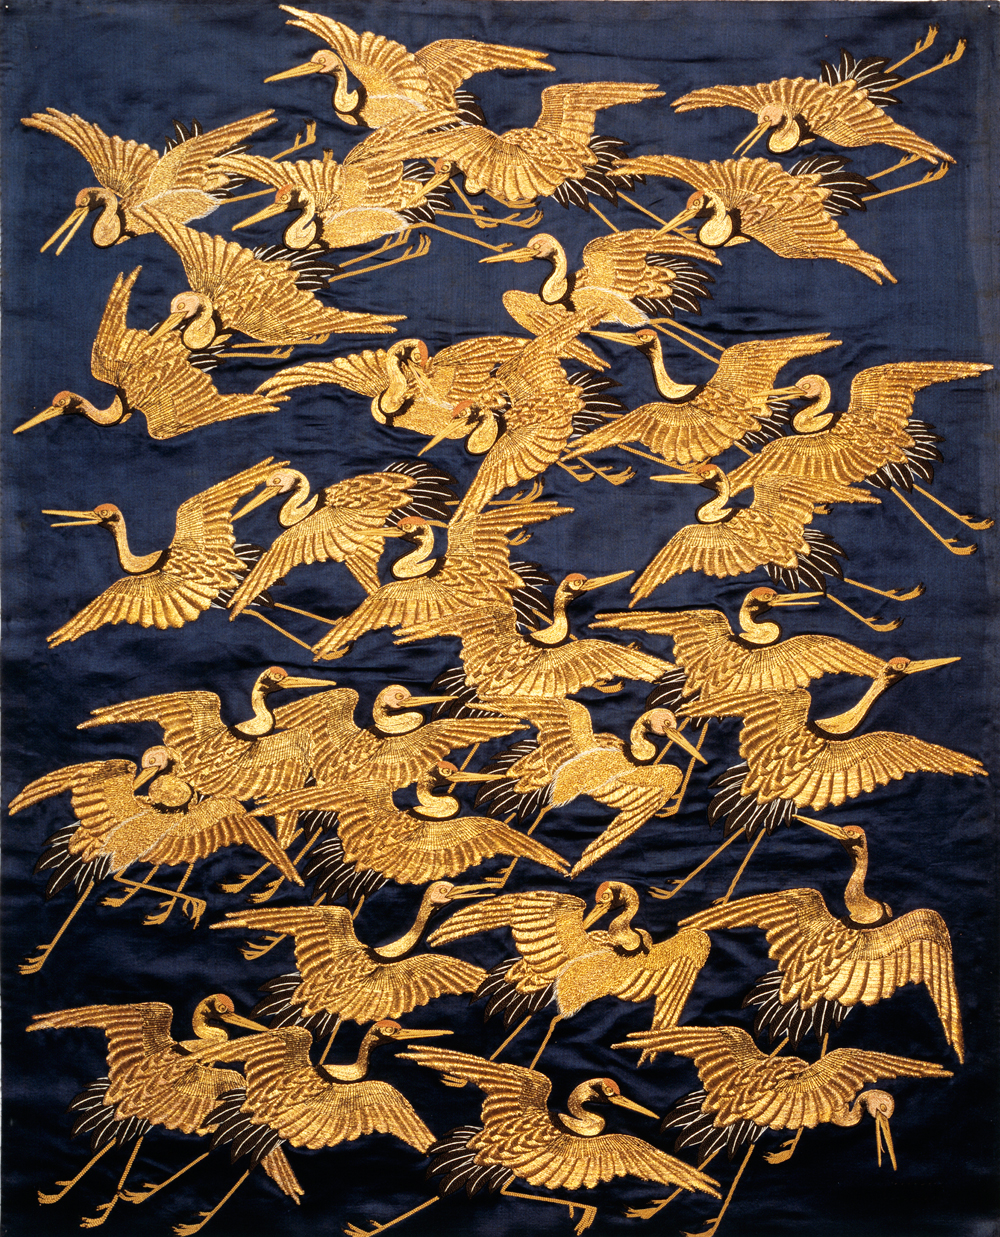 Art deco global inspiration victoria and albert museum for Chinese style wallpaper uk